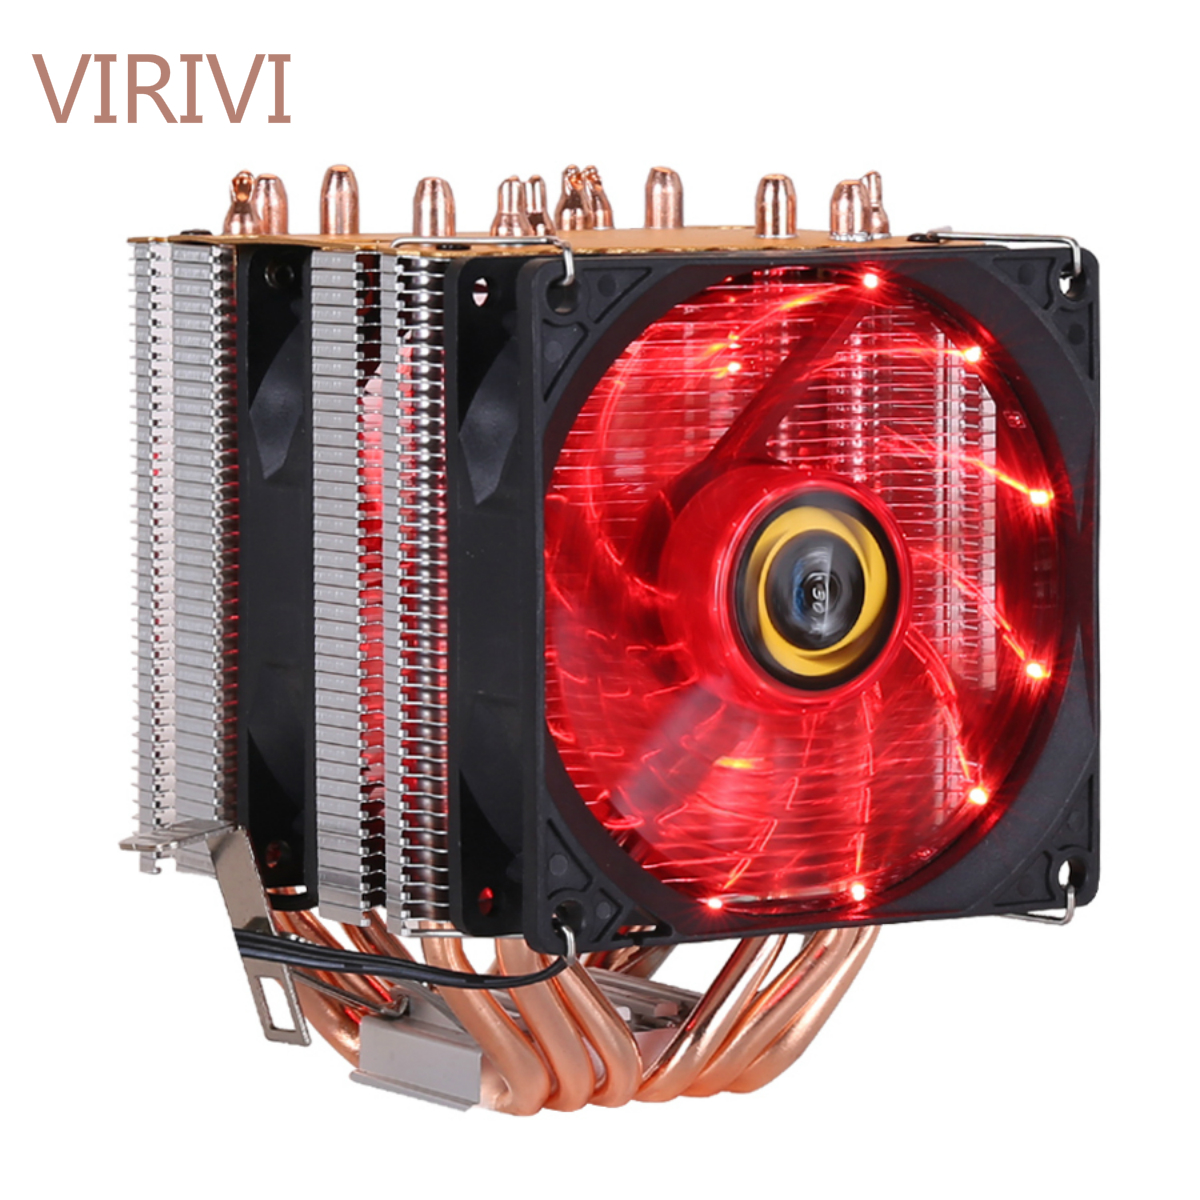 CPU Cooler Heatsink Kit High Quality 6 Heat-pipe Dual-tower Cooling 9cm RGB Fan Support 3Fans 3PIN4PIN Fan for Intel and For AMD image